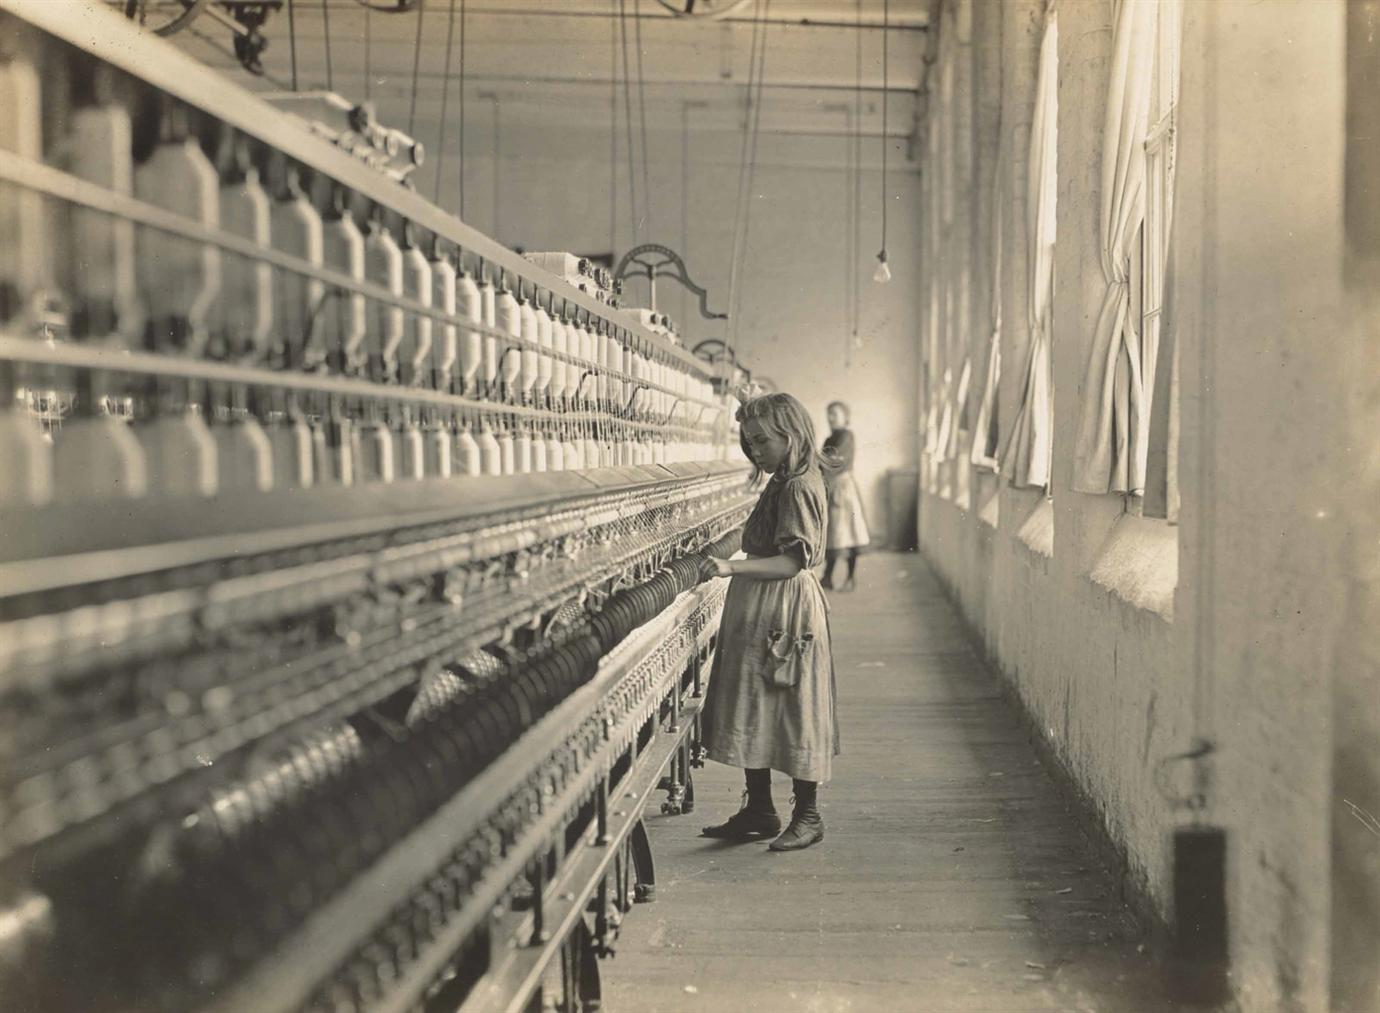 Lewis Wickes Hine-Sadie Pfeifer, A Cotton Mill Spinner, Lancaster, South Carolina-1908